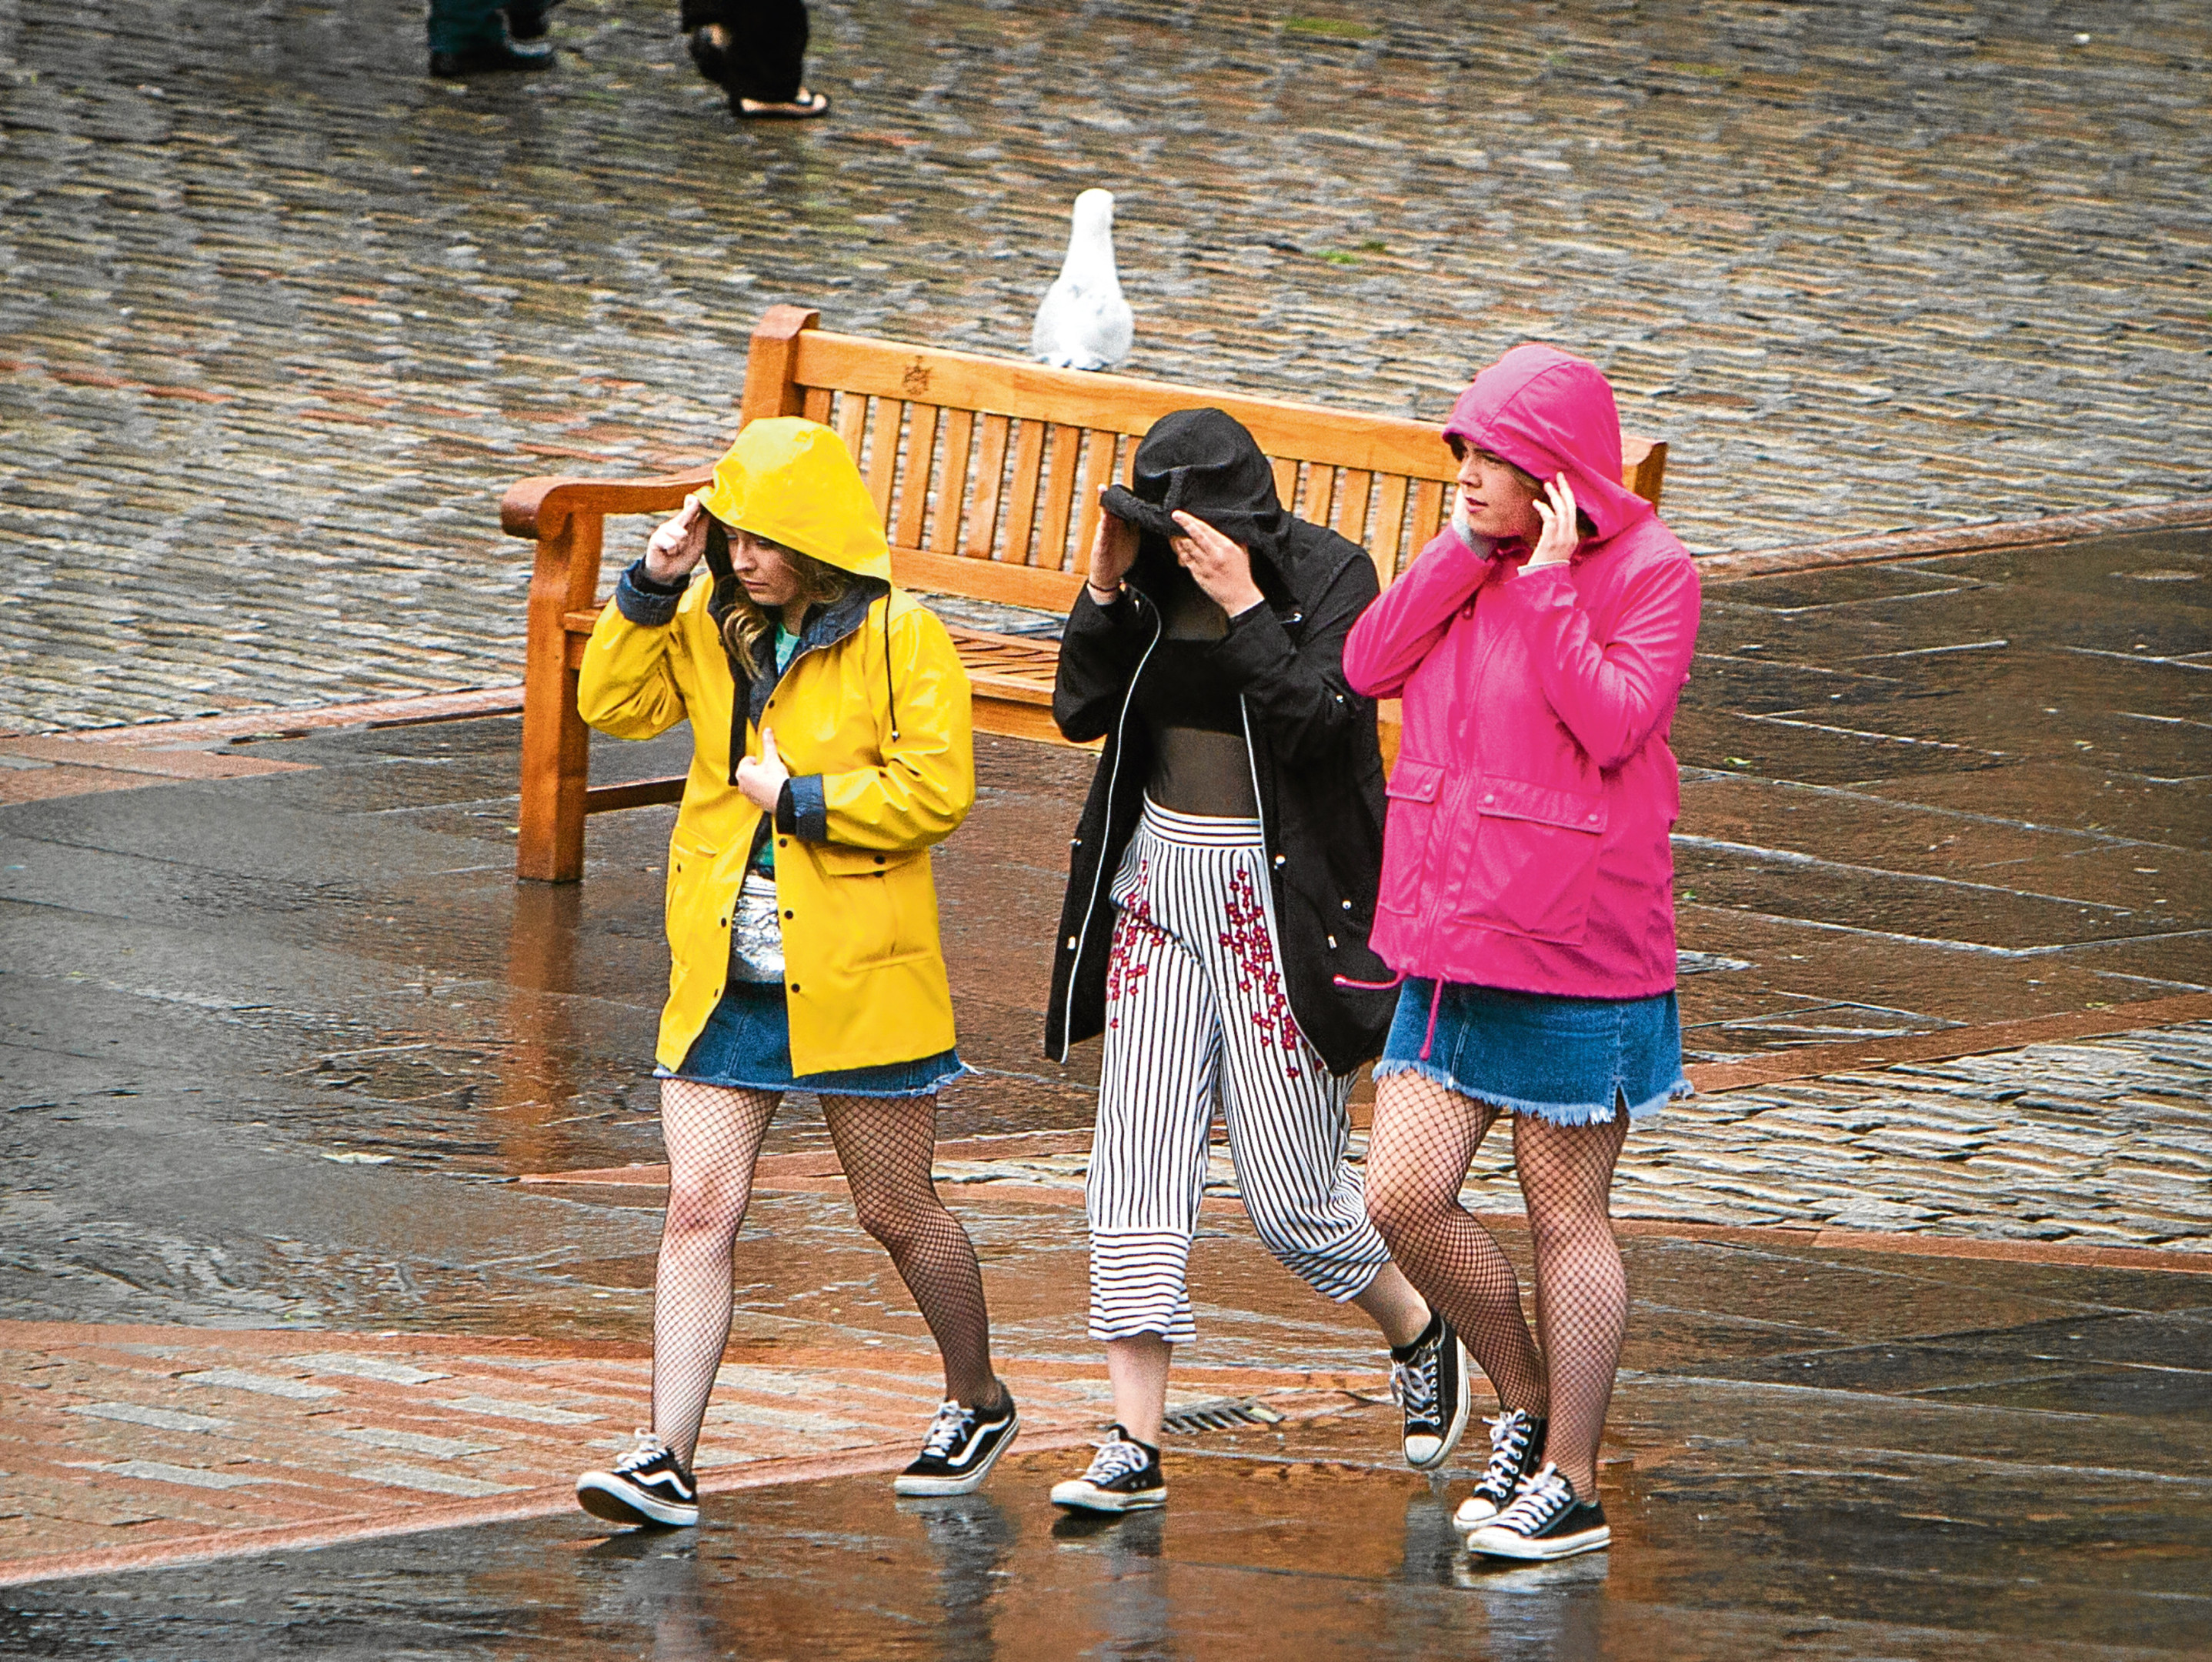 Although there were days with plenty of sunshine this summer, the rain was never far away — as experienced by this group pictured at city centre.